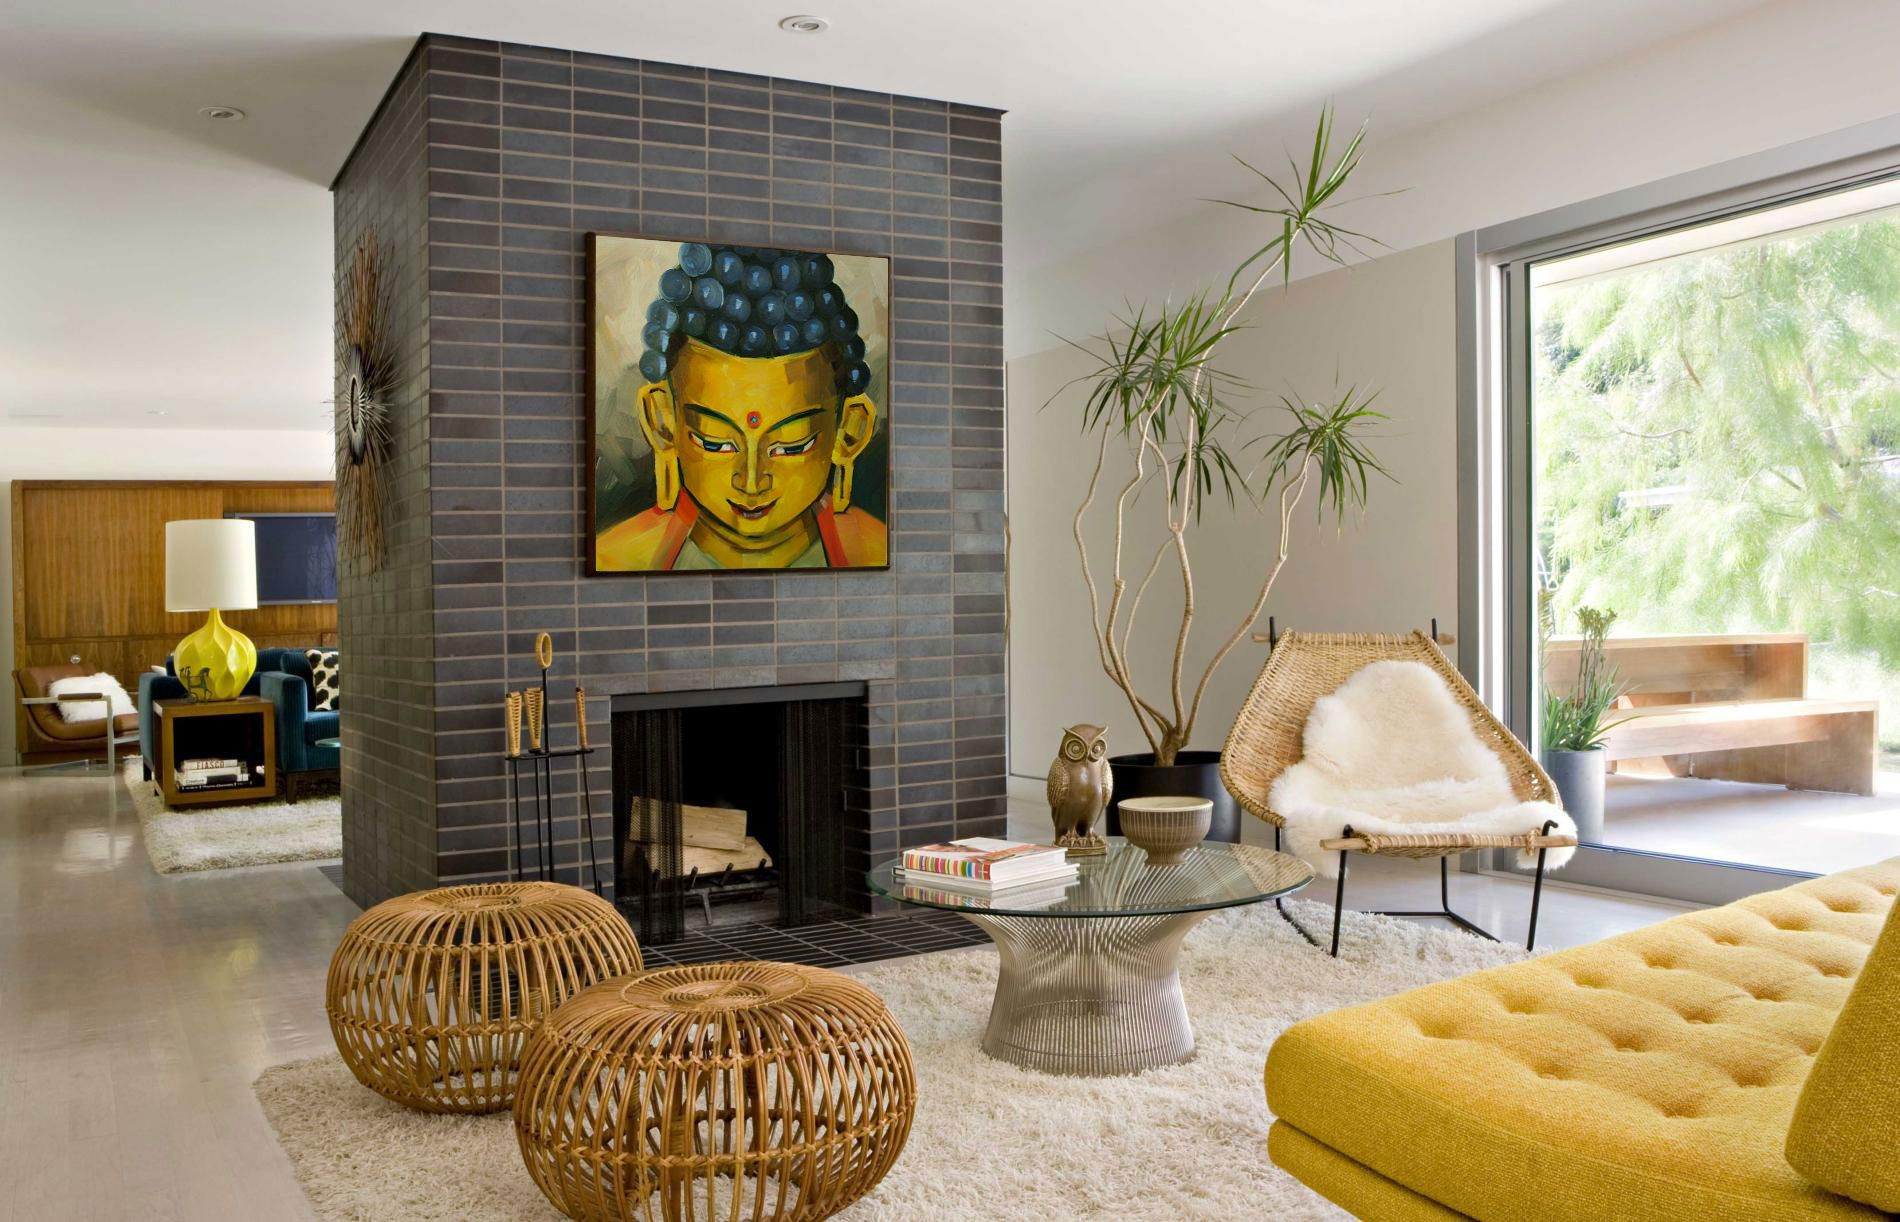 http://amritaart.com/art-gallery/categories/buddha-oil-paintings/ | Mid  century modern living room, Mid century modern interior design, Mid century  modern living